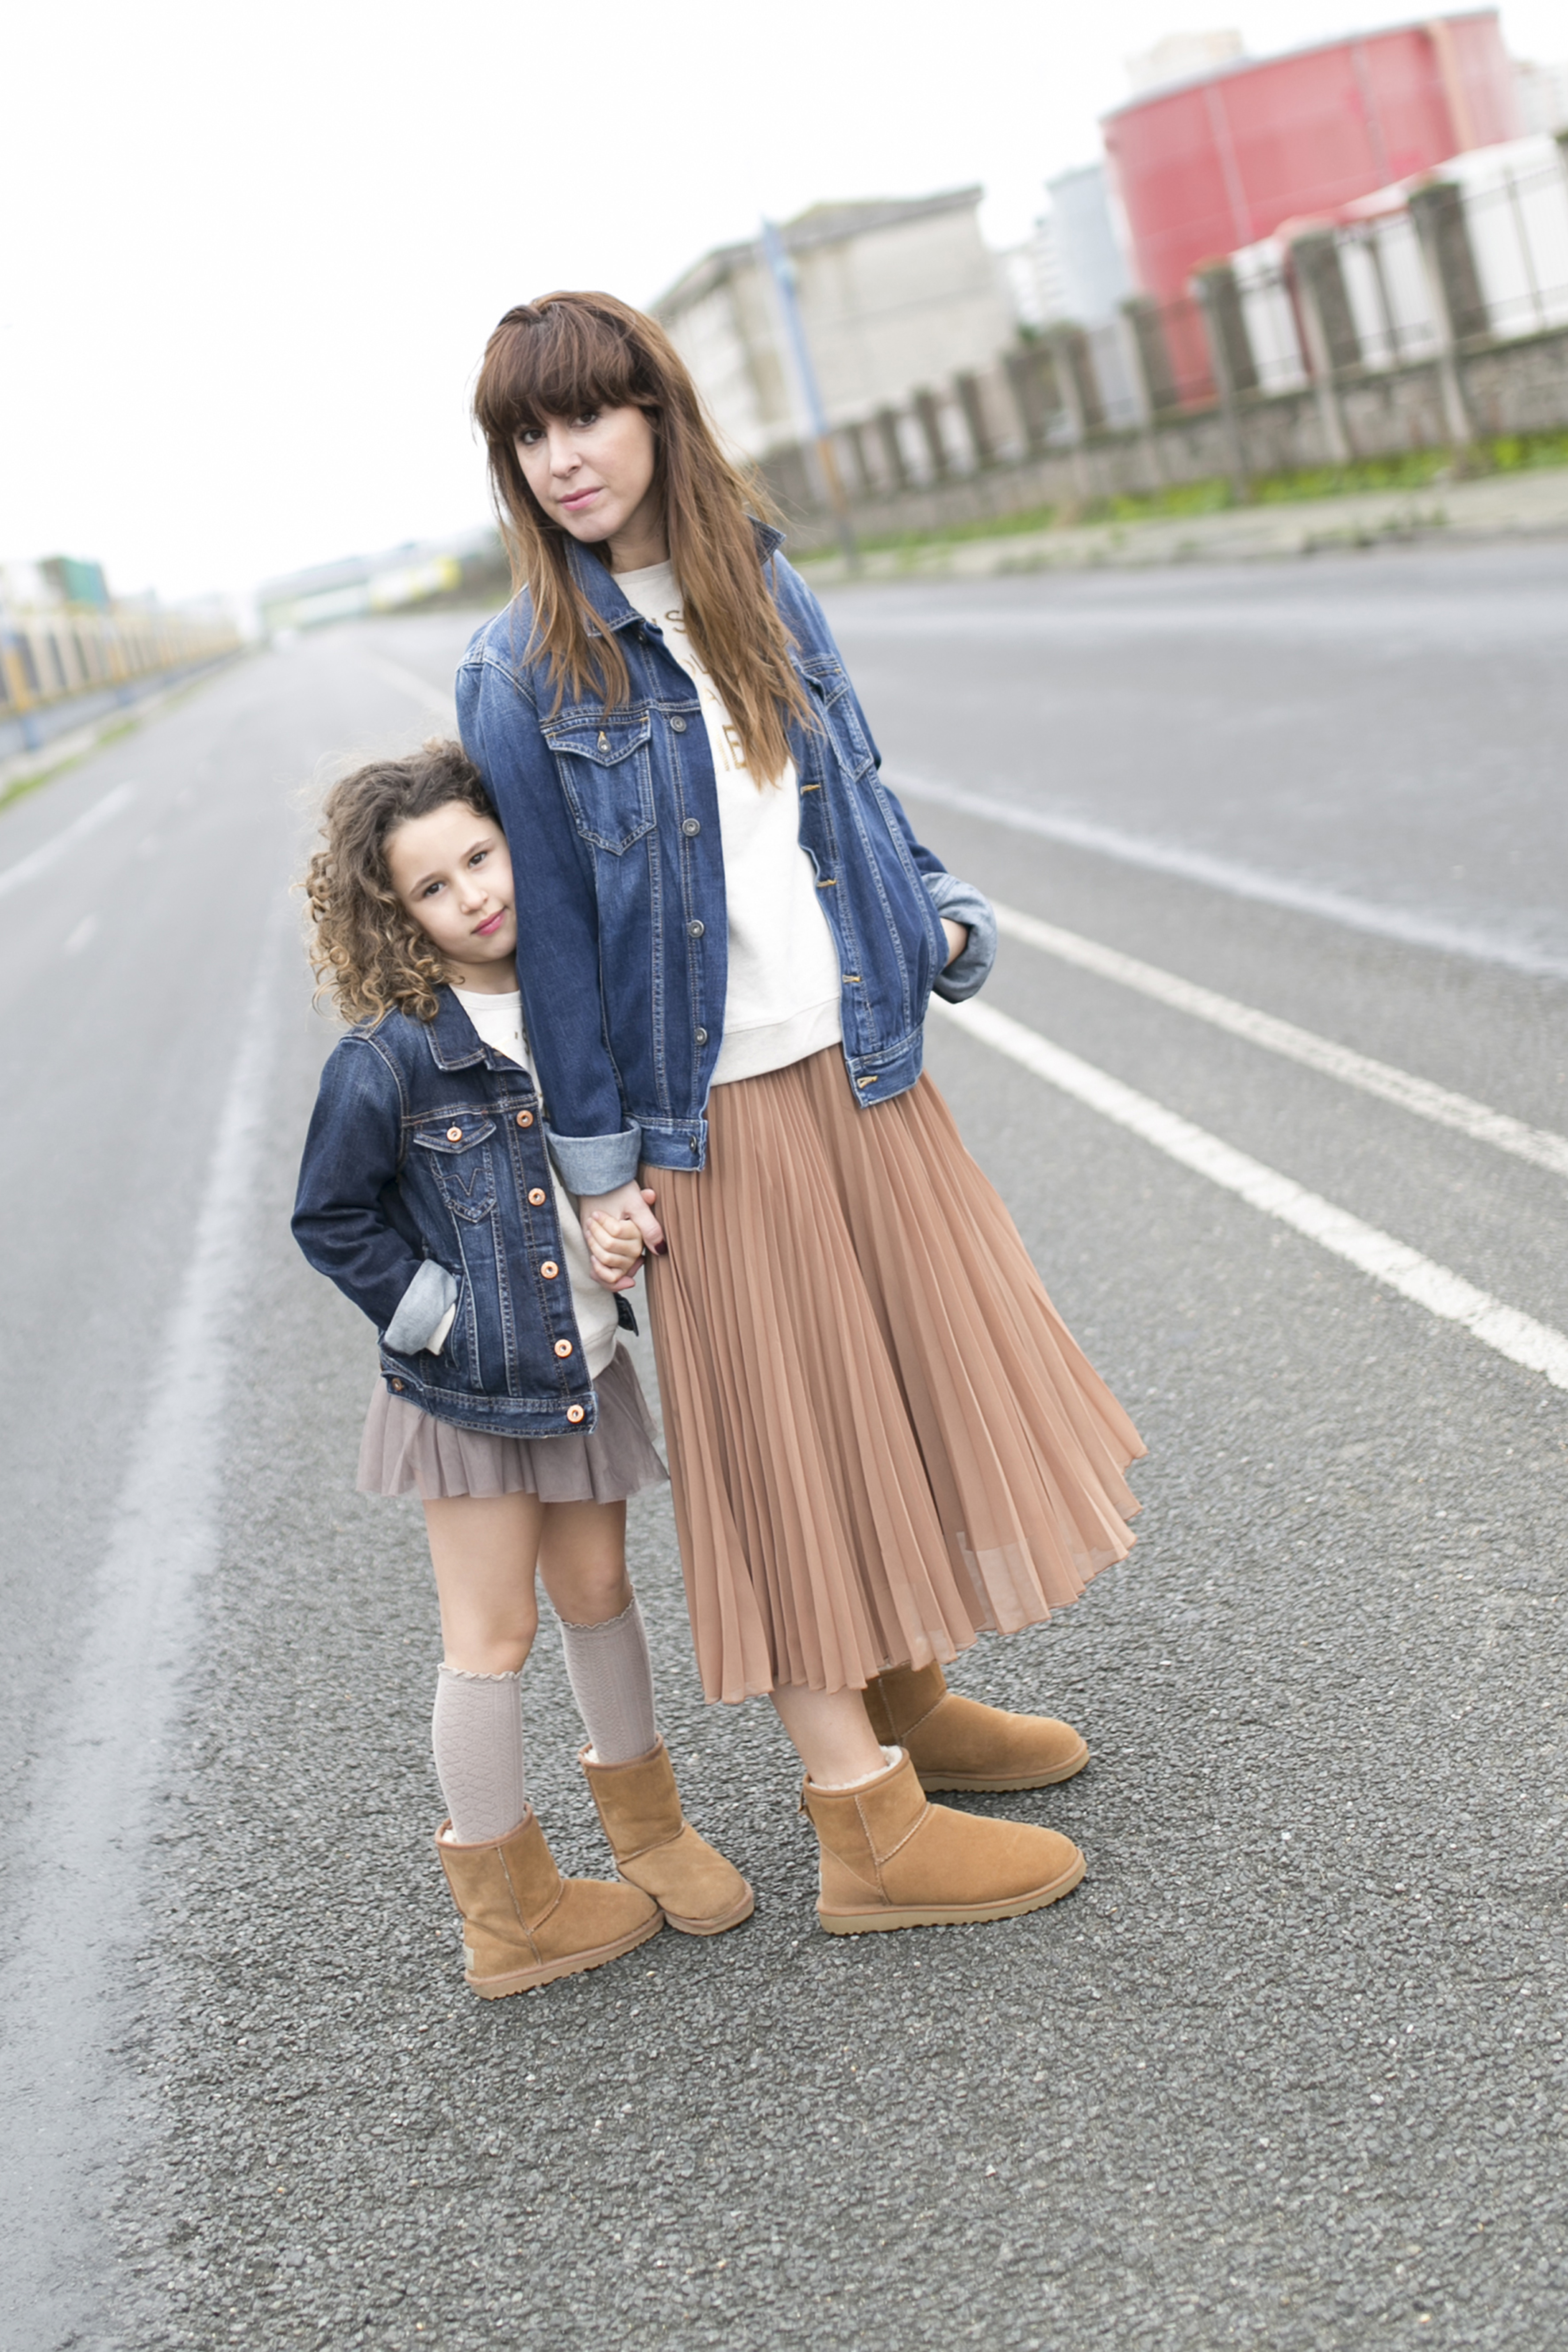 Ugg look-denim-minime-mother and daughter- pepe jeans- Ugg- zara- zarakids- street style- descalzaporelparque